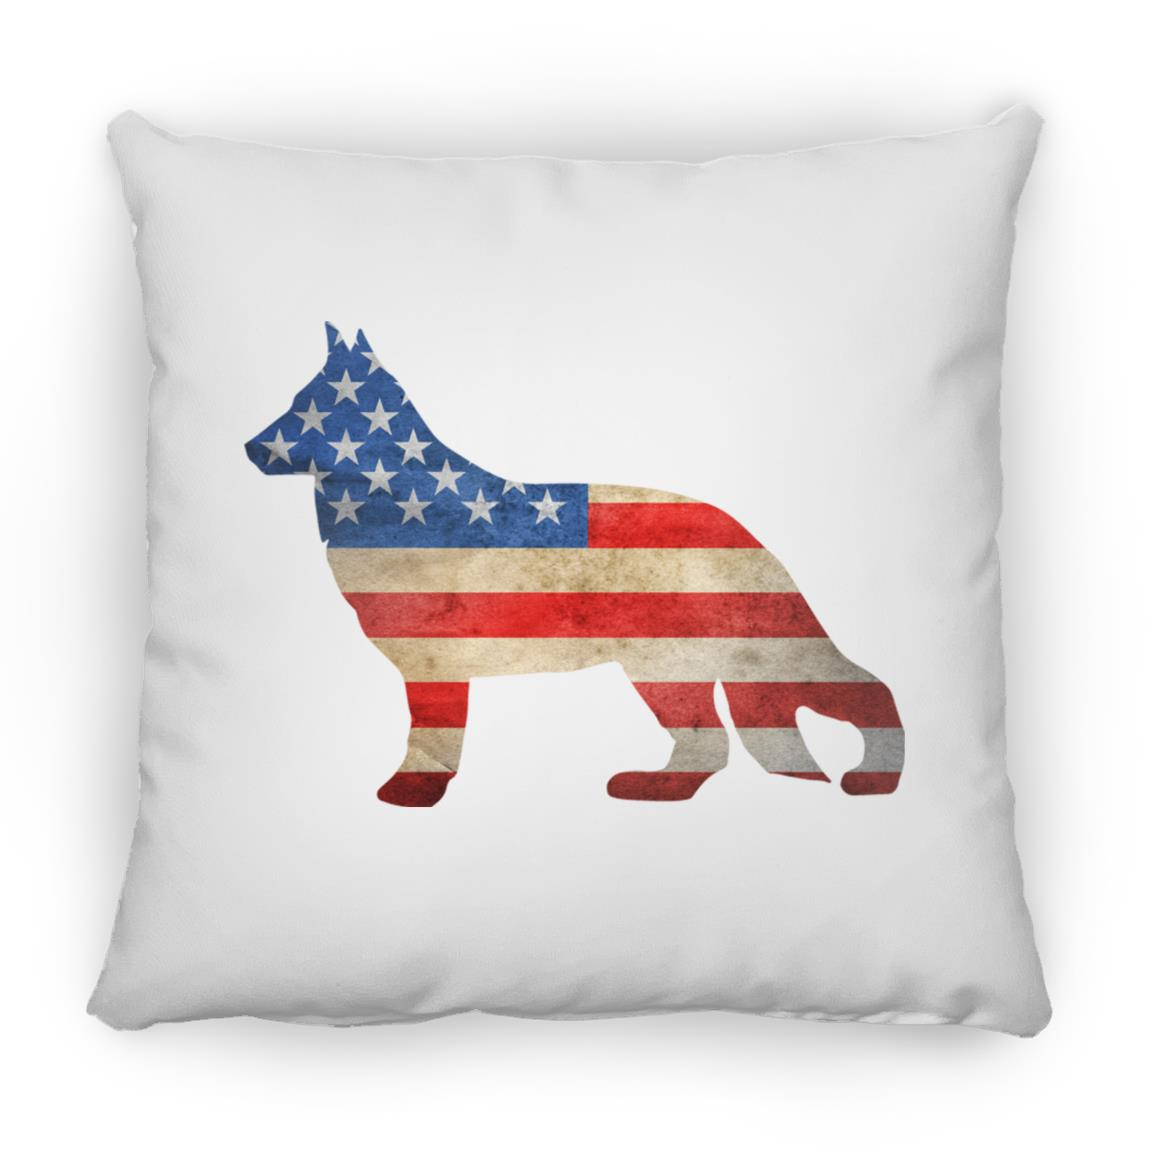 "German Shepherd USA 🇺🇲 14"" x14"" Pillow"